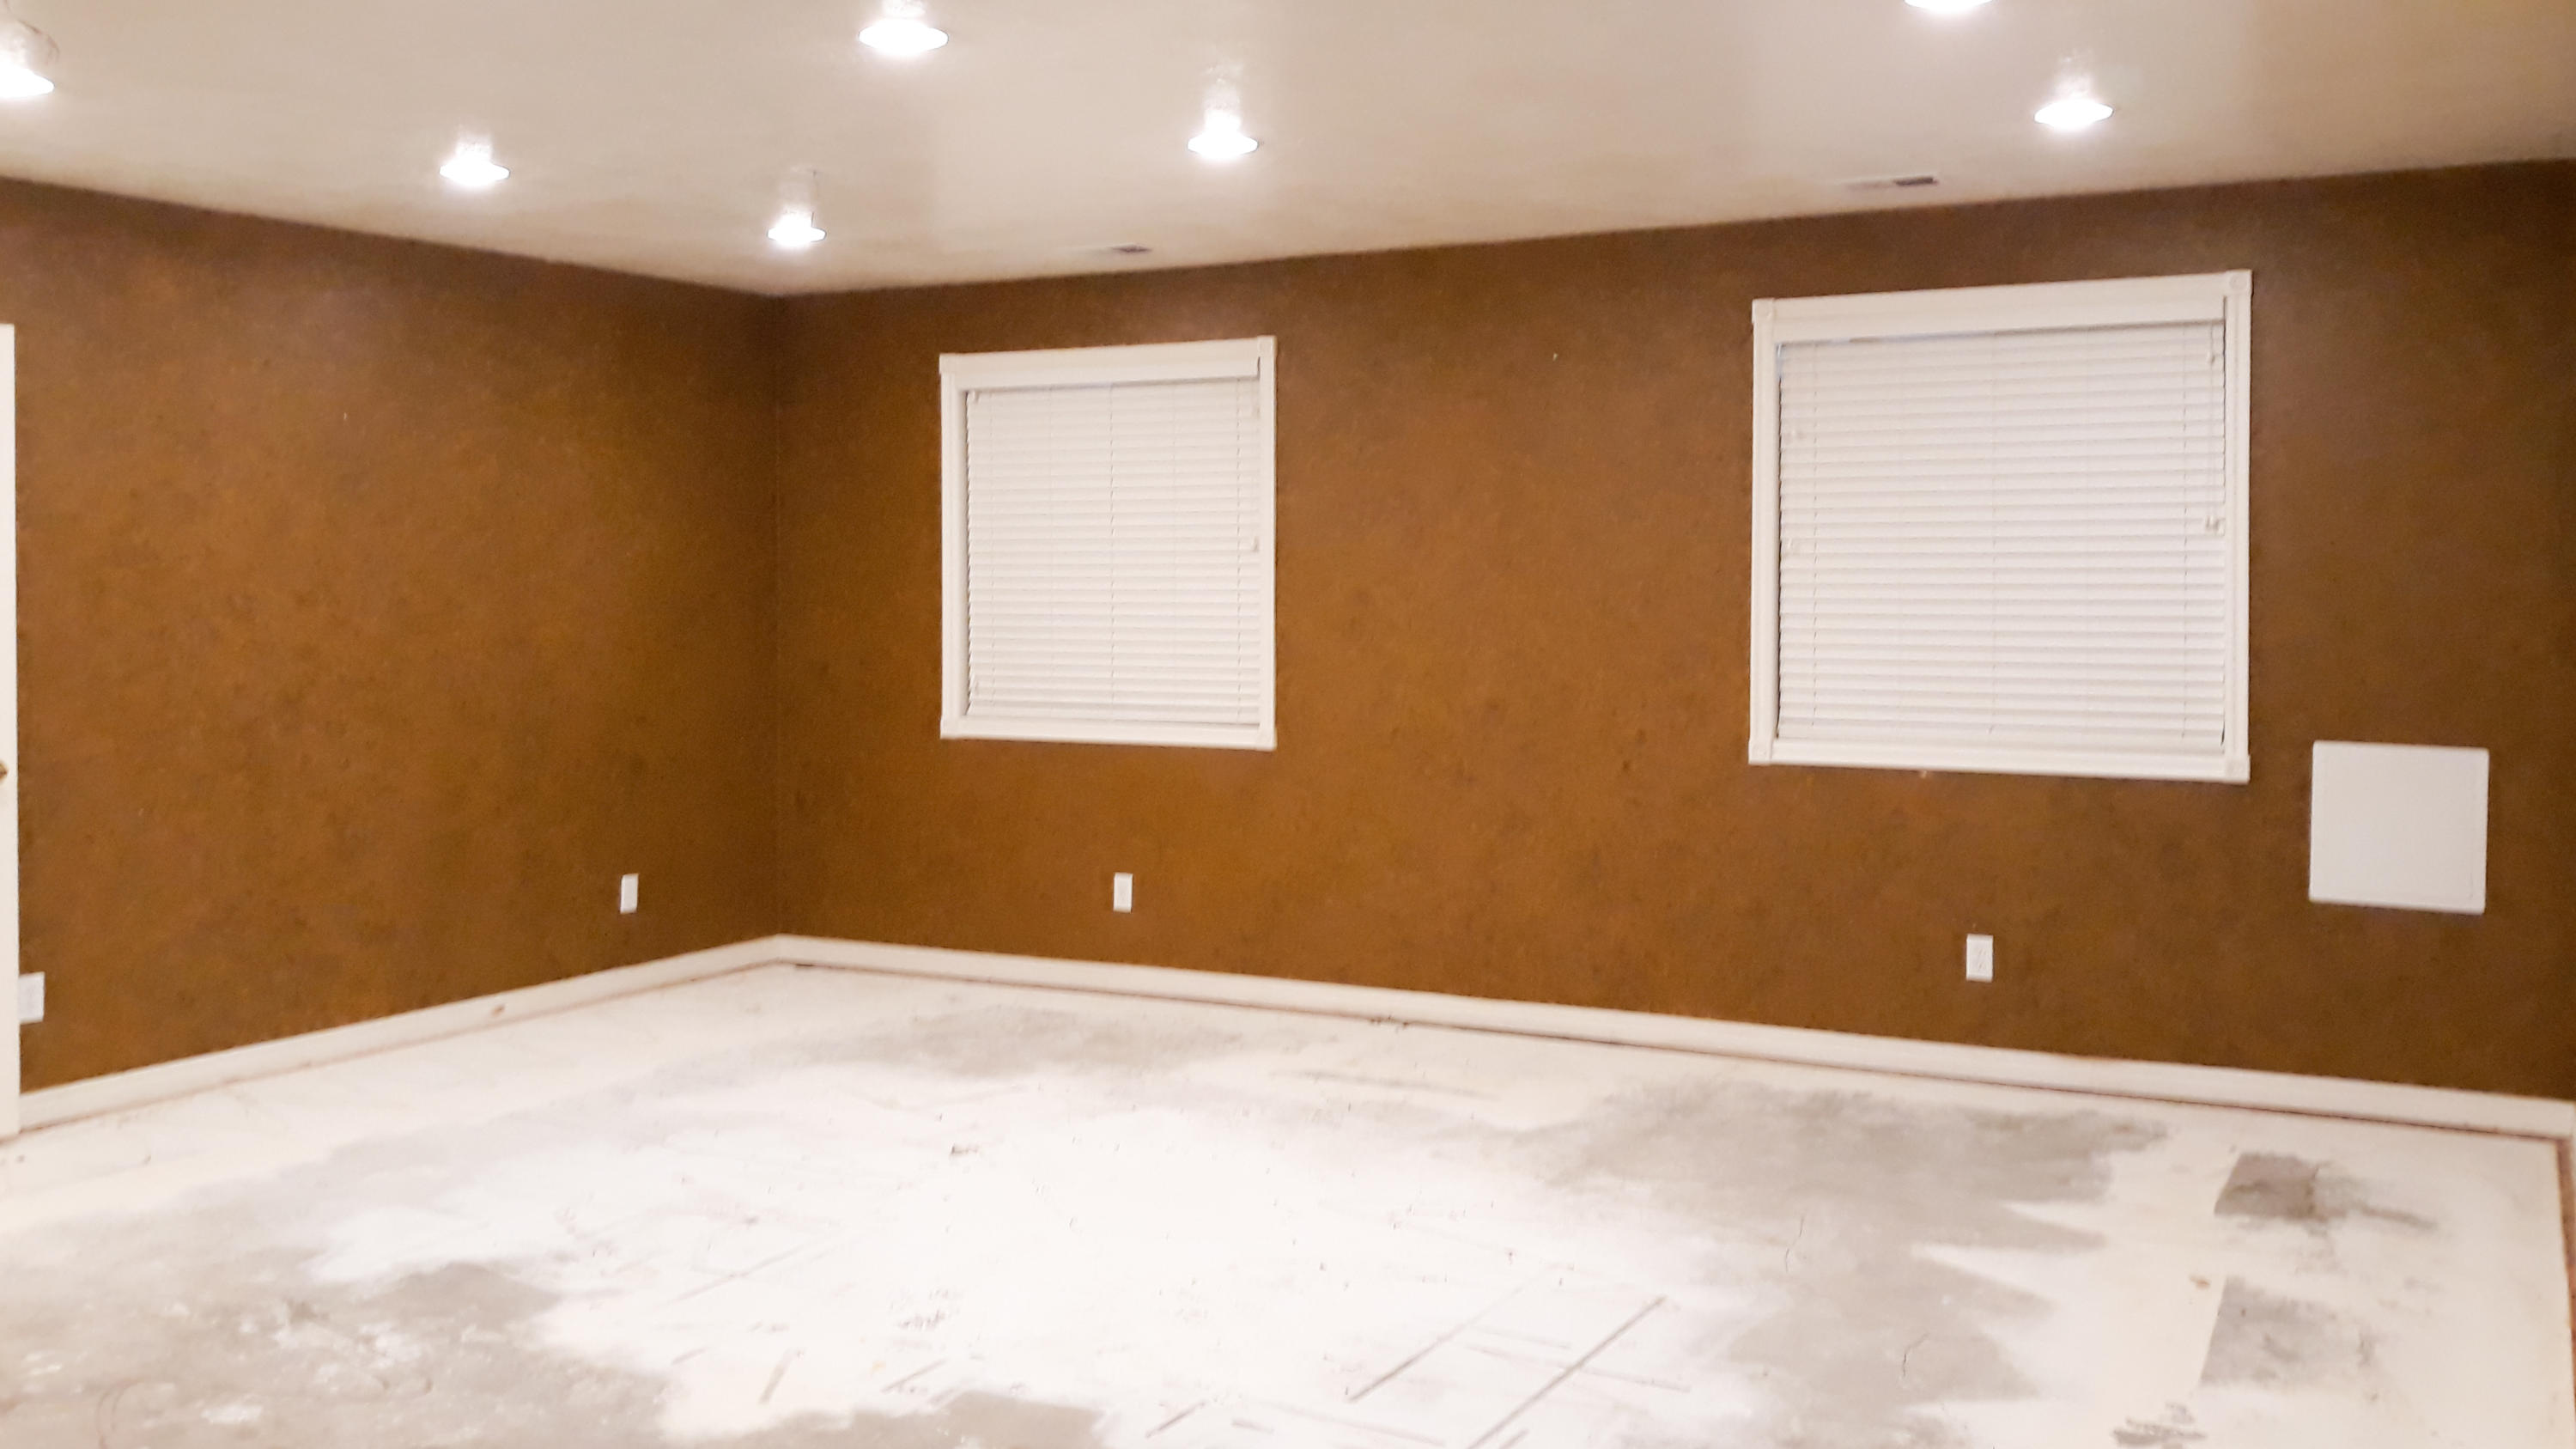 This is your piece of paradise! Play, entertain, and tend a garden in custom built garden boxes. Established fruit trees. Full basement for enjoyment. Custom workbench and floor-to-ceiling shelves in the garage. There\